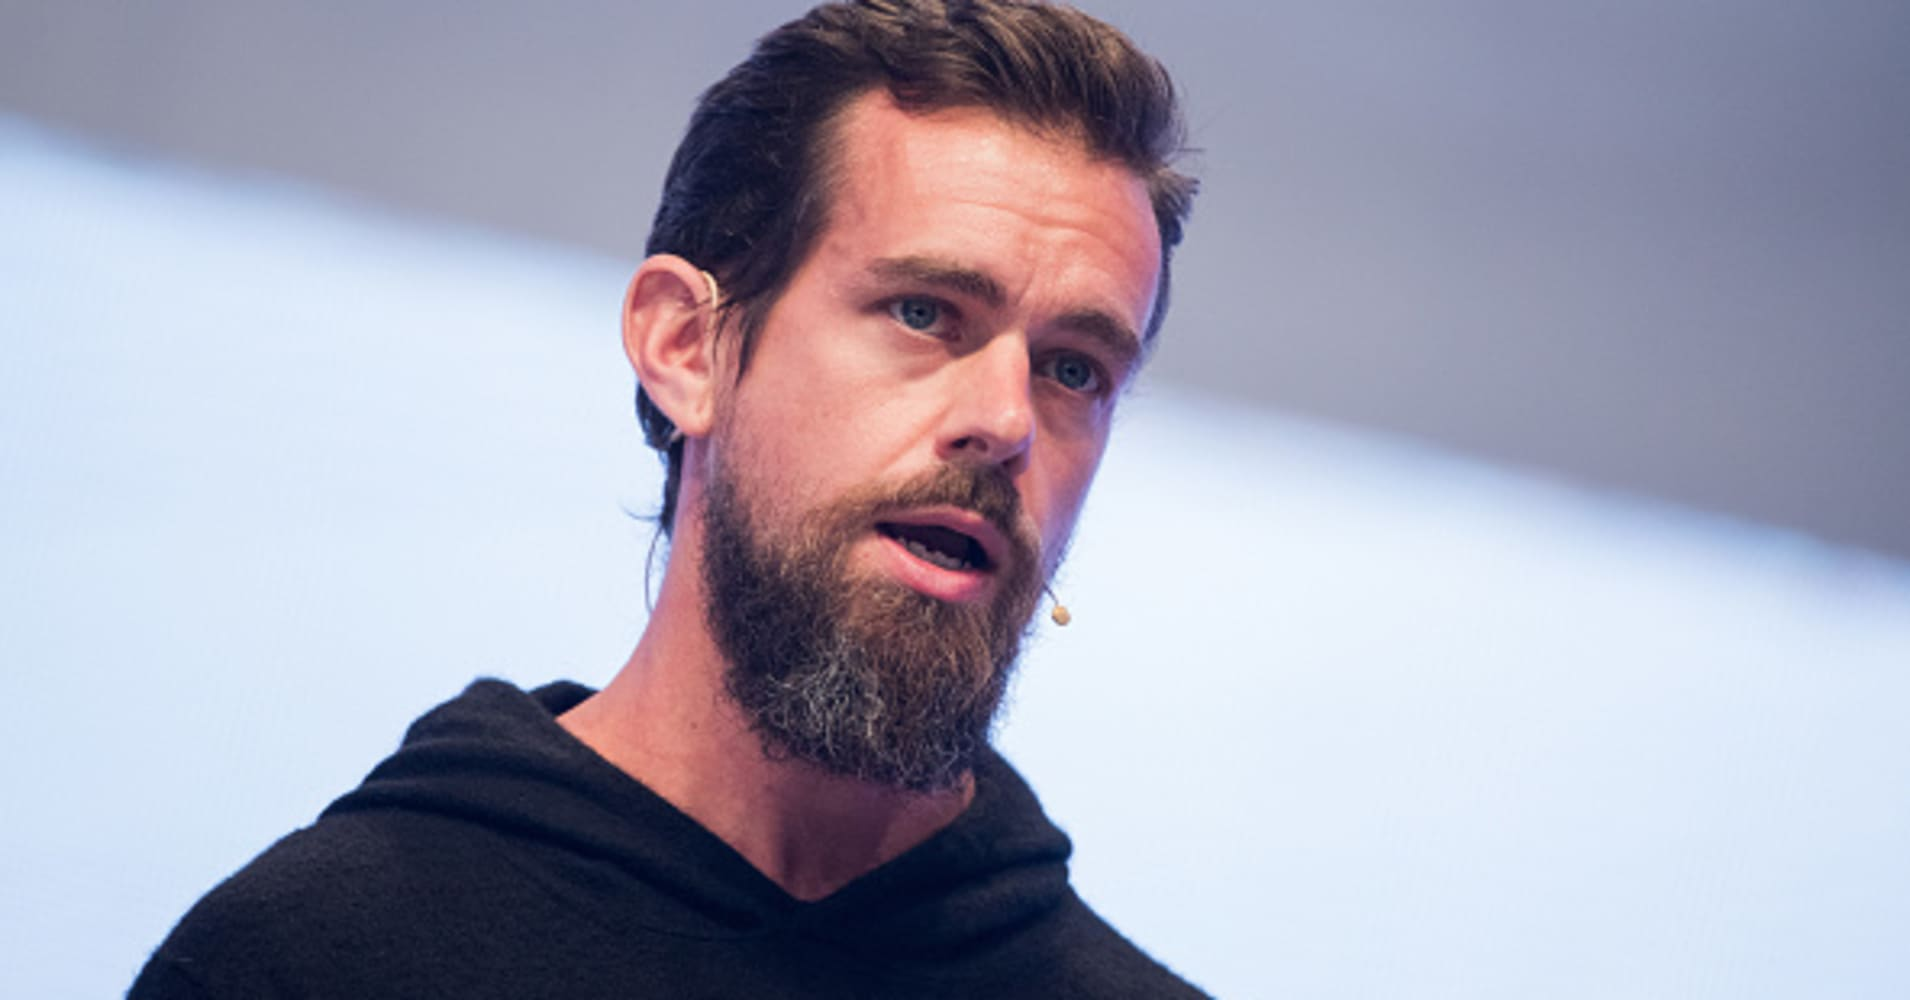 Jack Dorsey Loses 200,000 Followers on Twitter After Fake User Purge